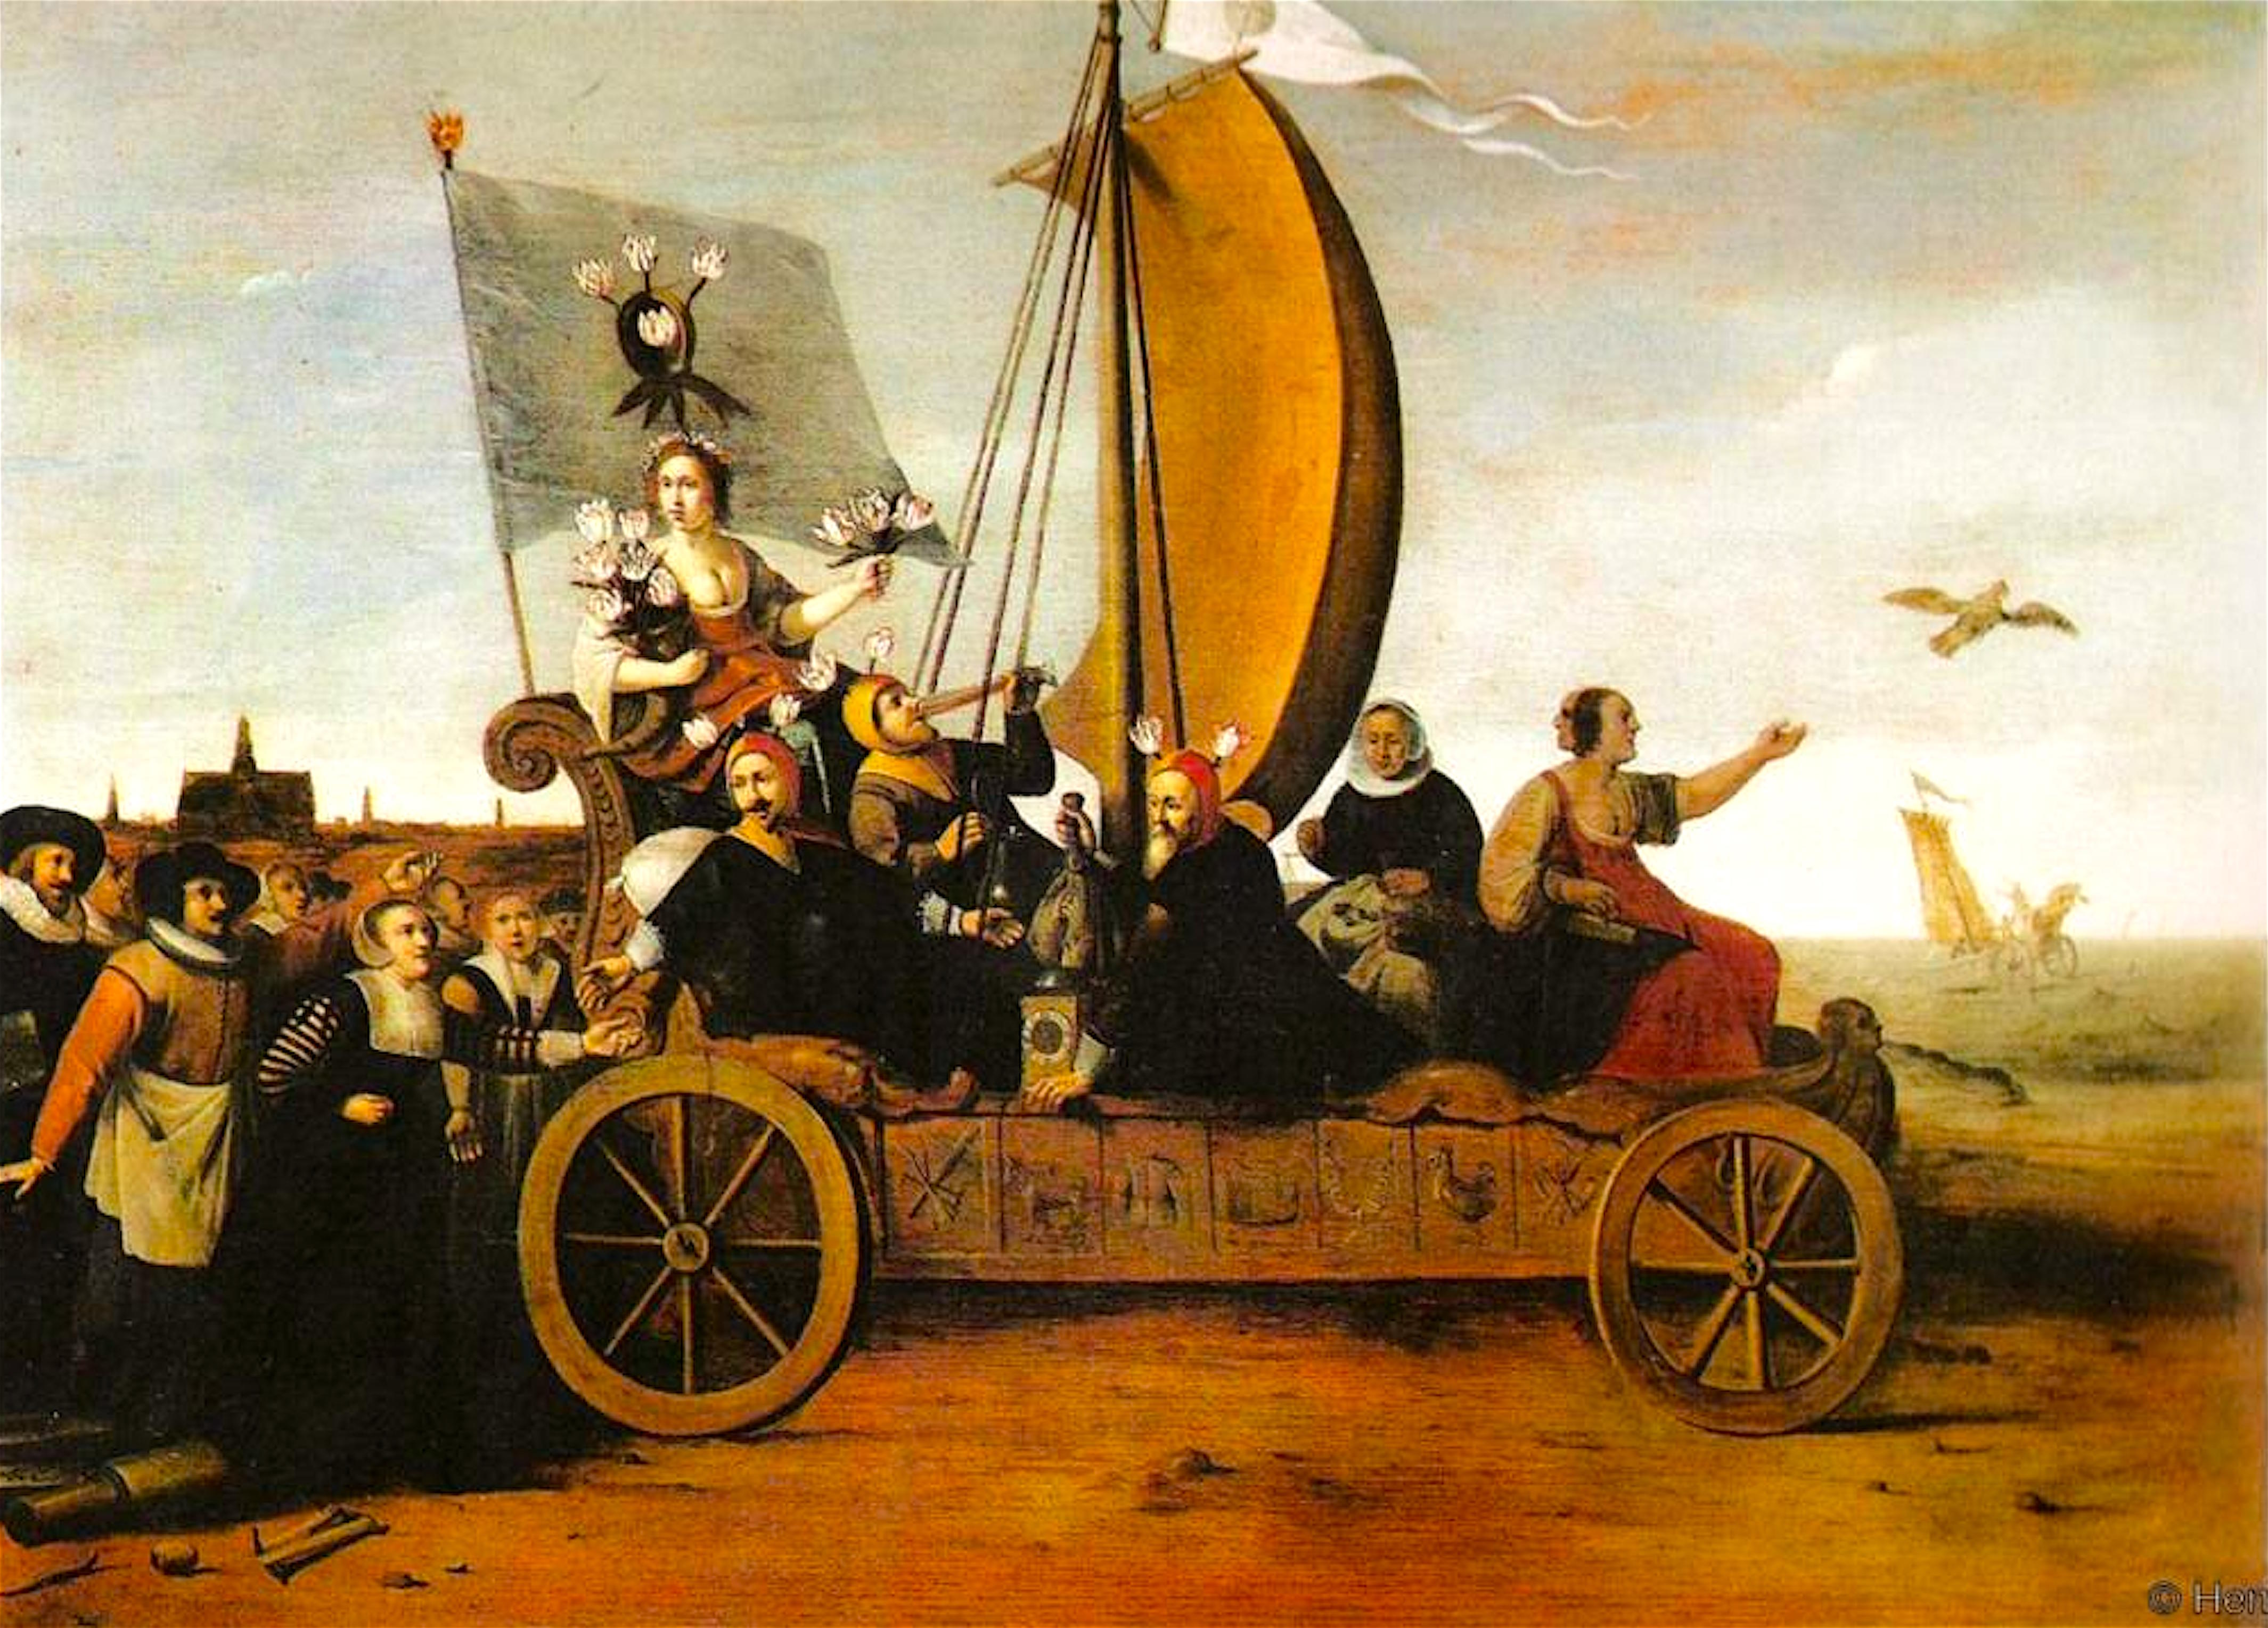 Anne Goldgar – Tulip Mania: the classic story of a Dutch financial bubble is mostly wrong